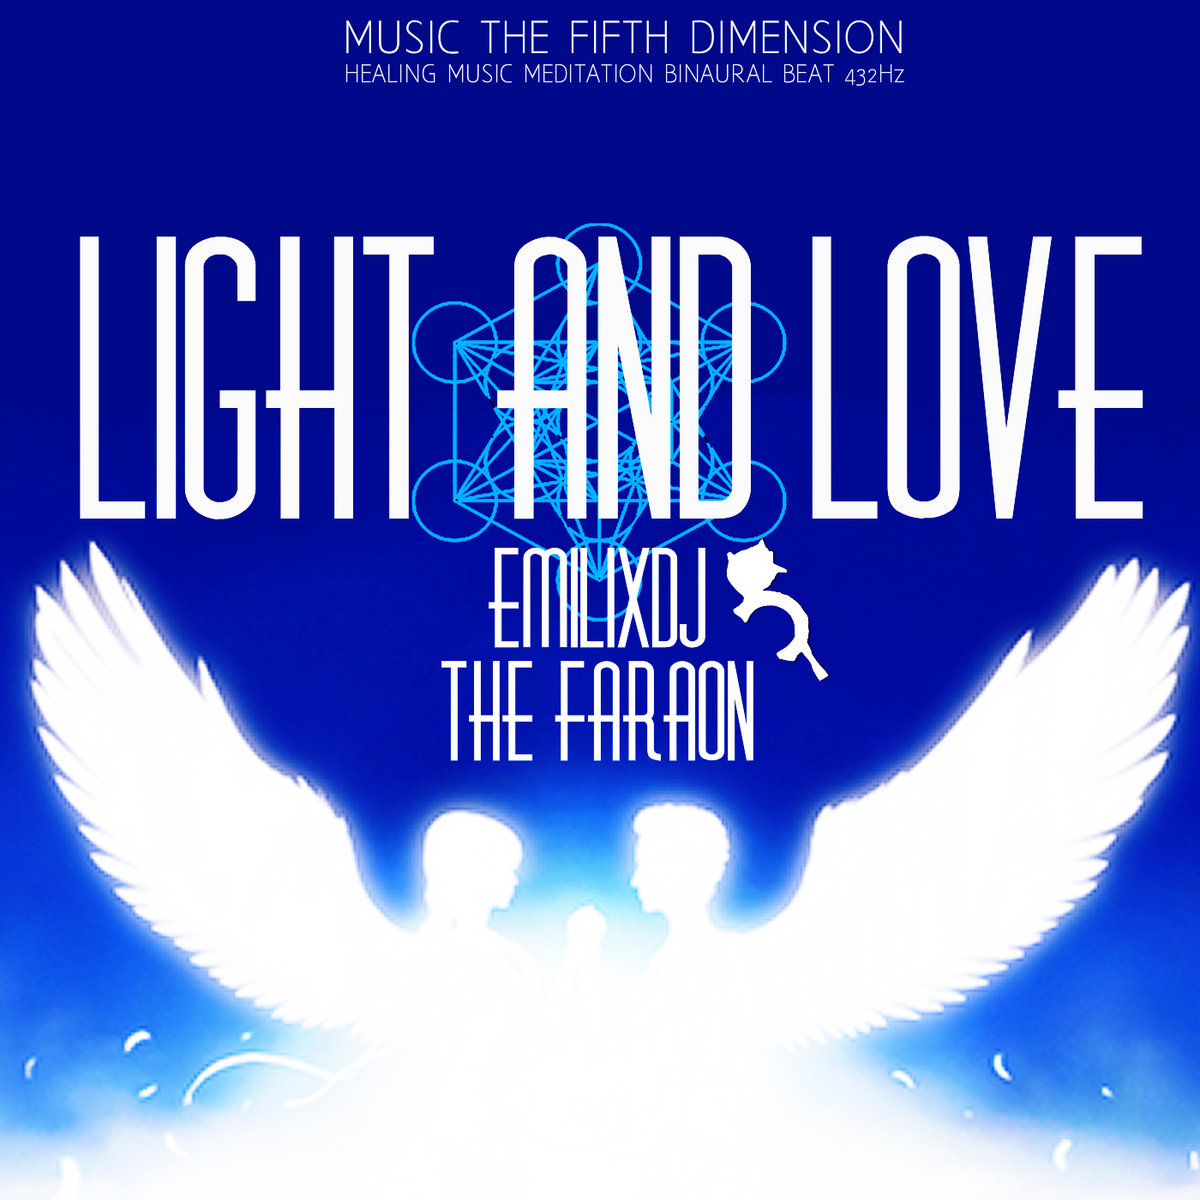 Fifth Dimension: The Light to See